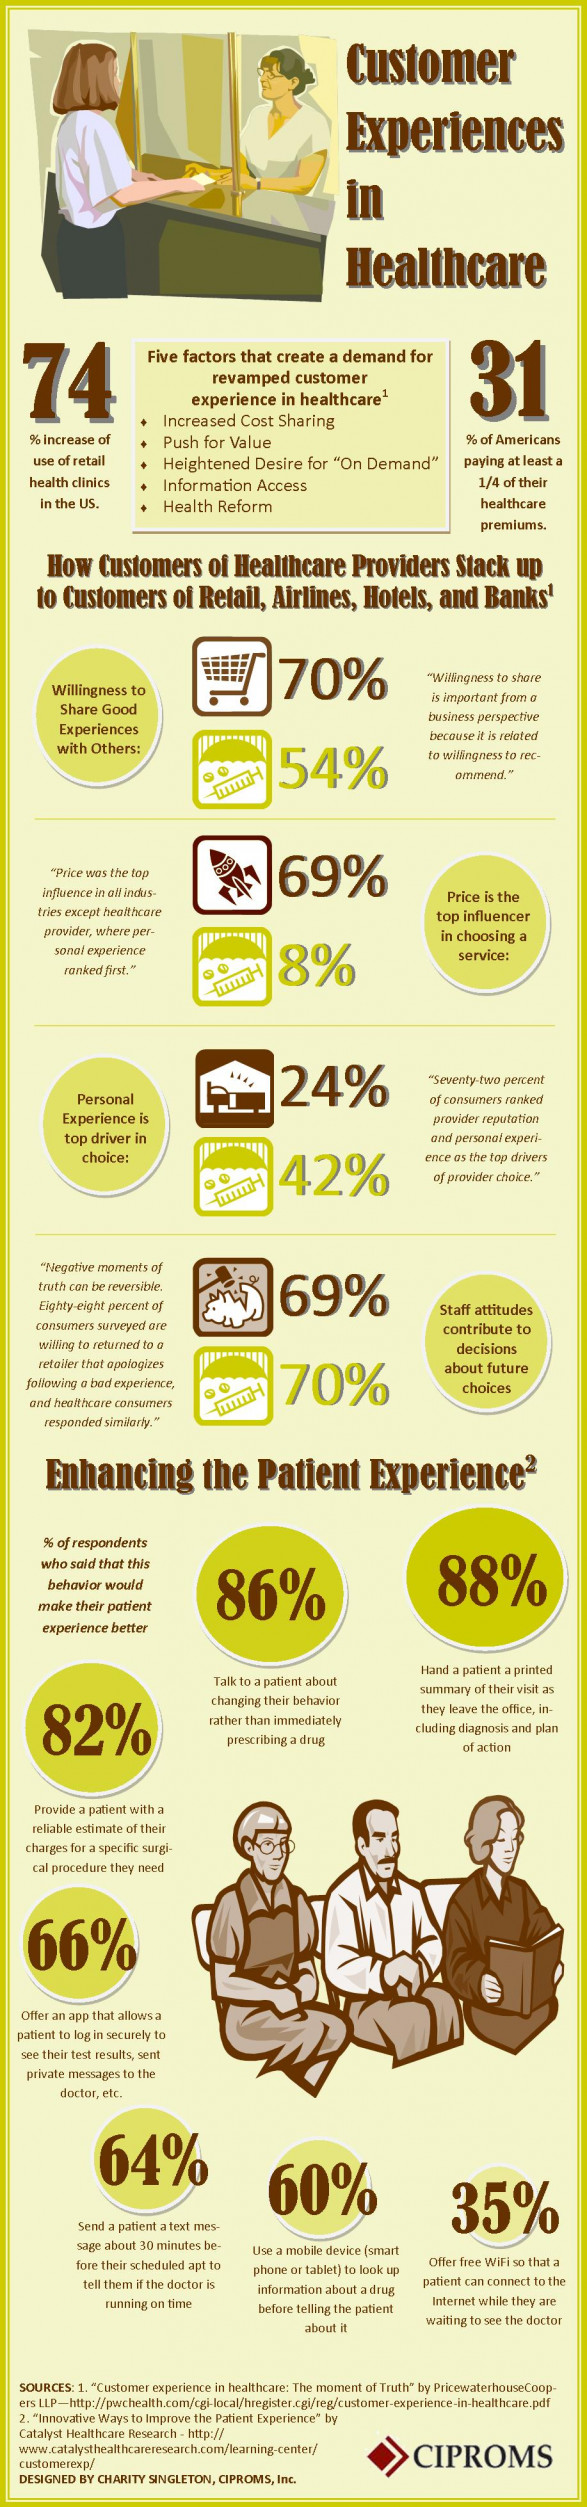 Customer Experiences in Healthcare